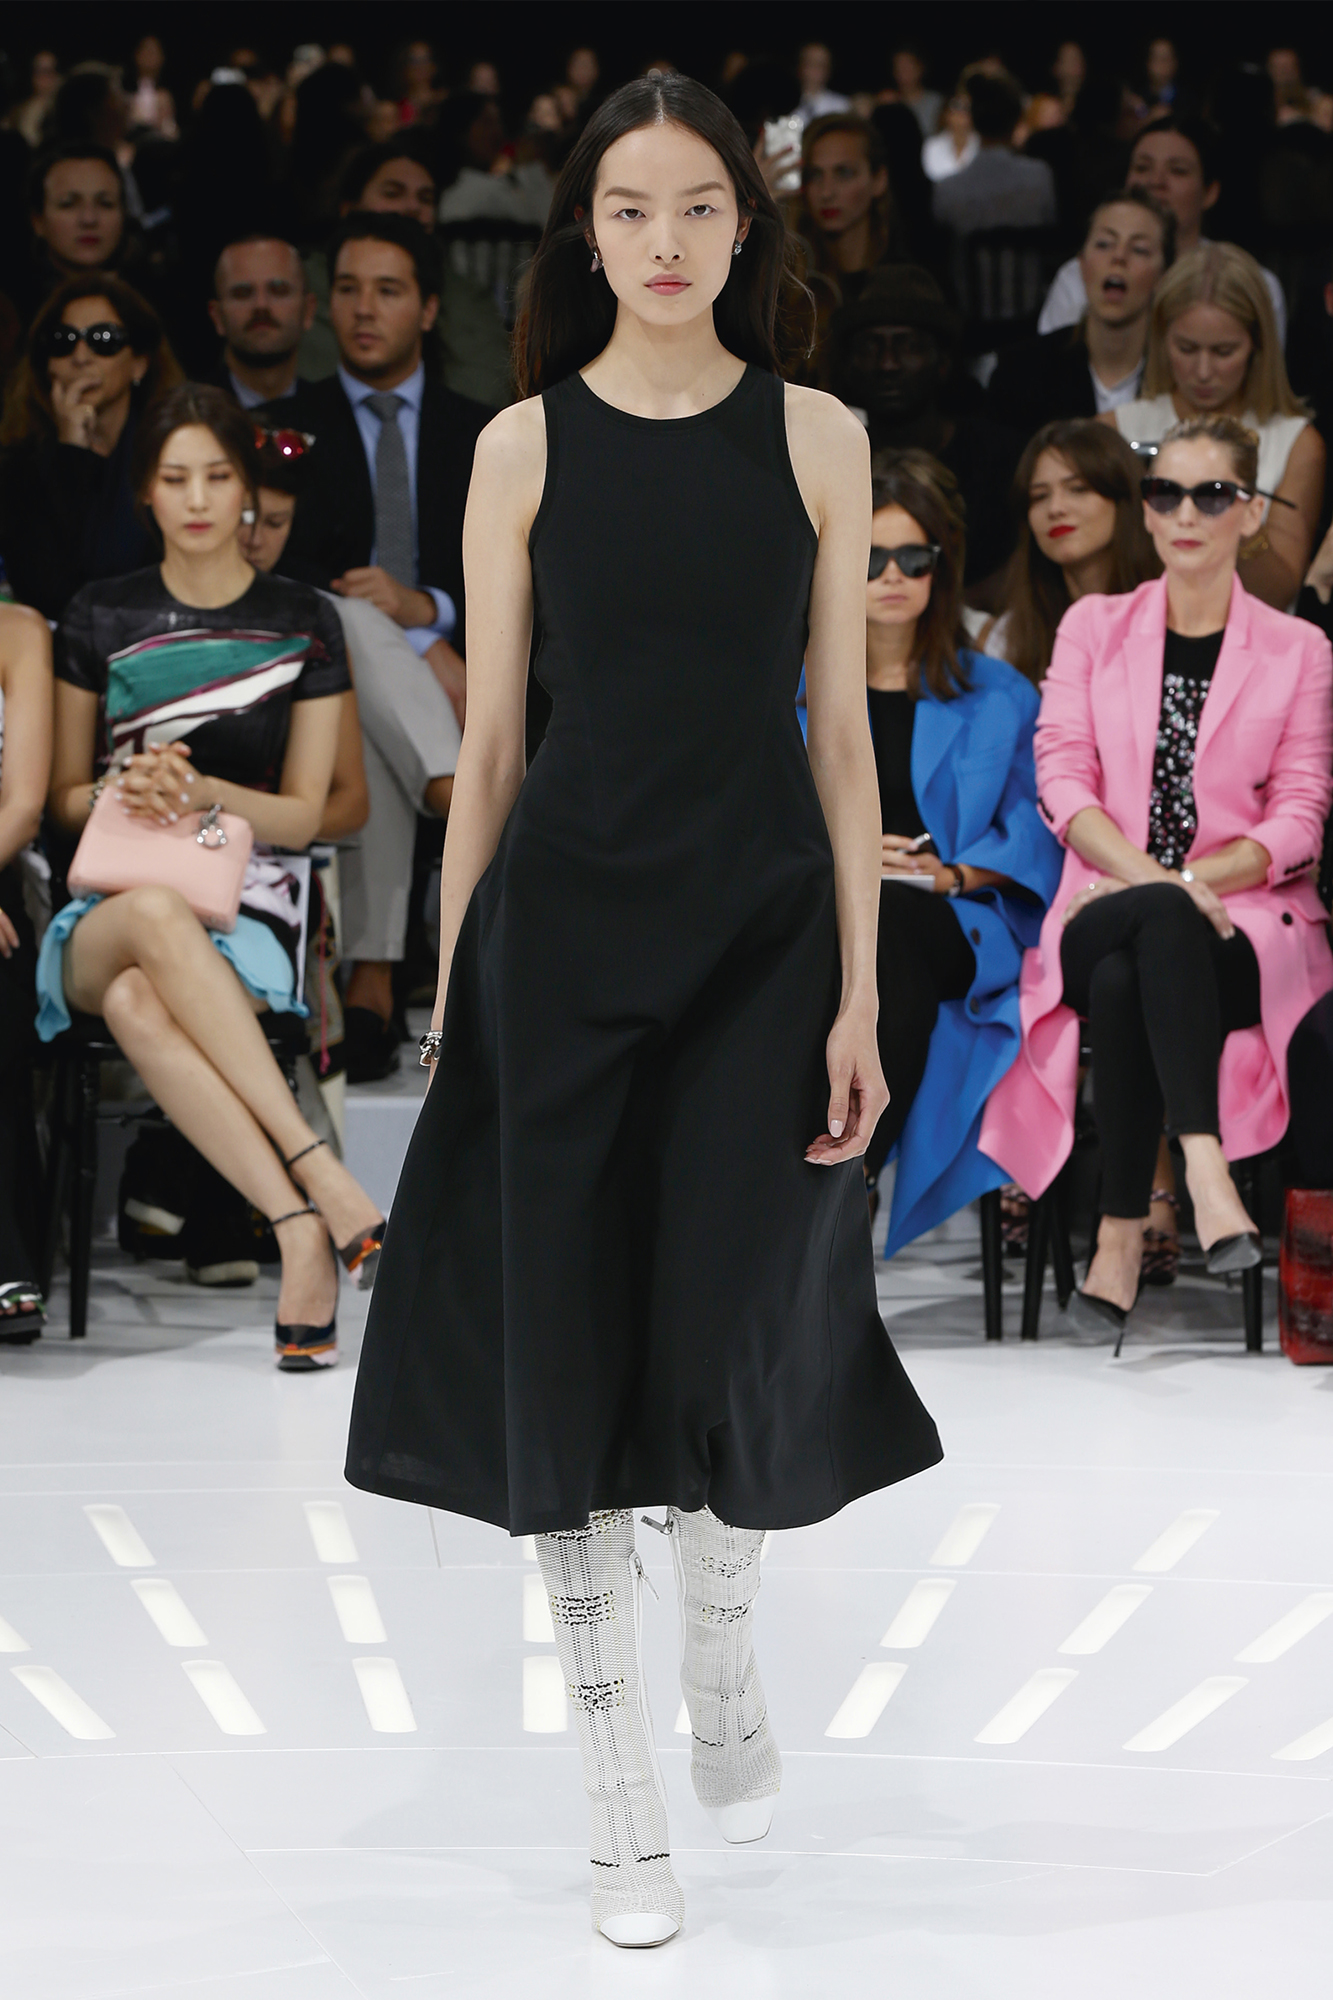 Christian Dior Haute Couture Spring-Summer Ready To Wear Dresses & Accessories Collection 2015-16 (7)